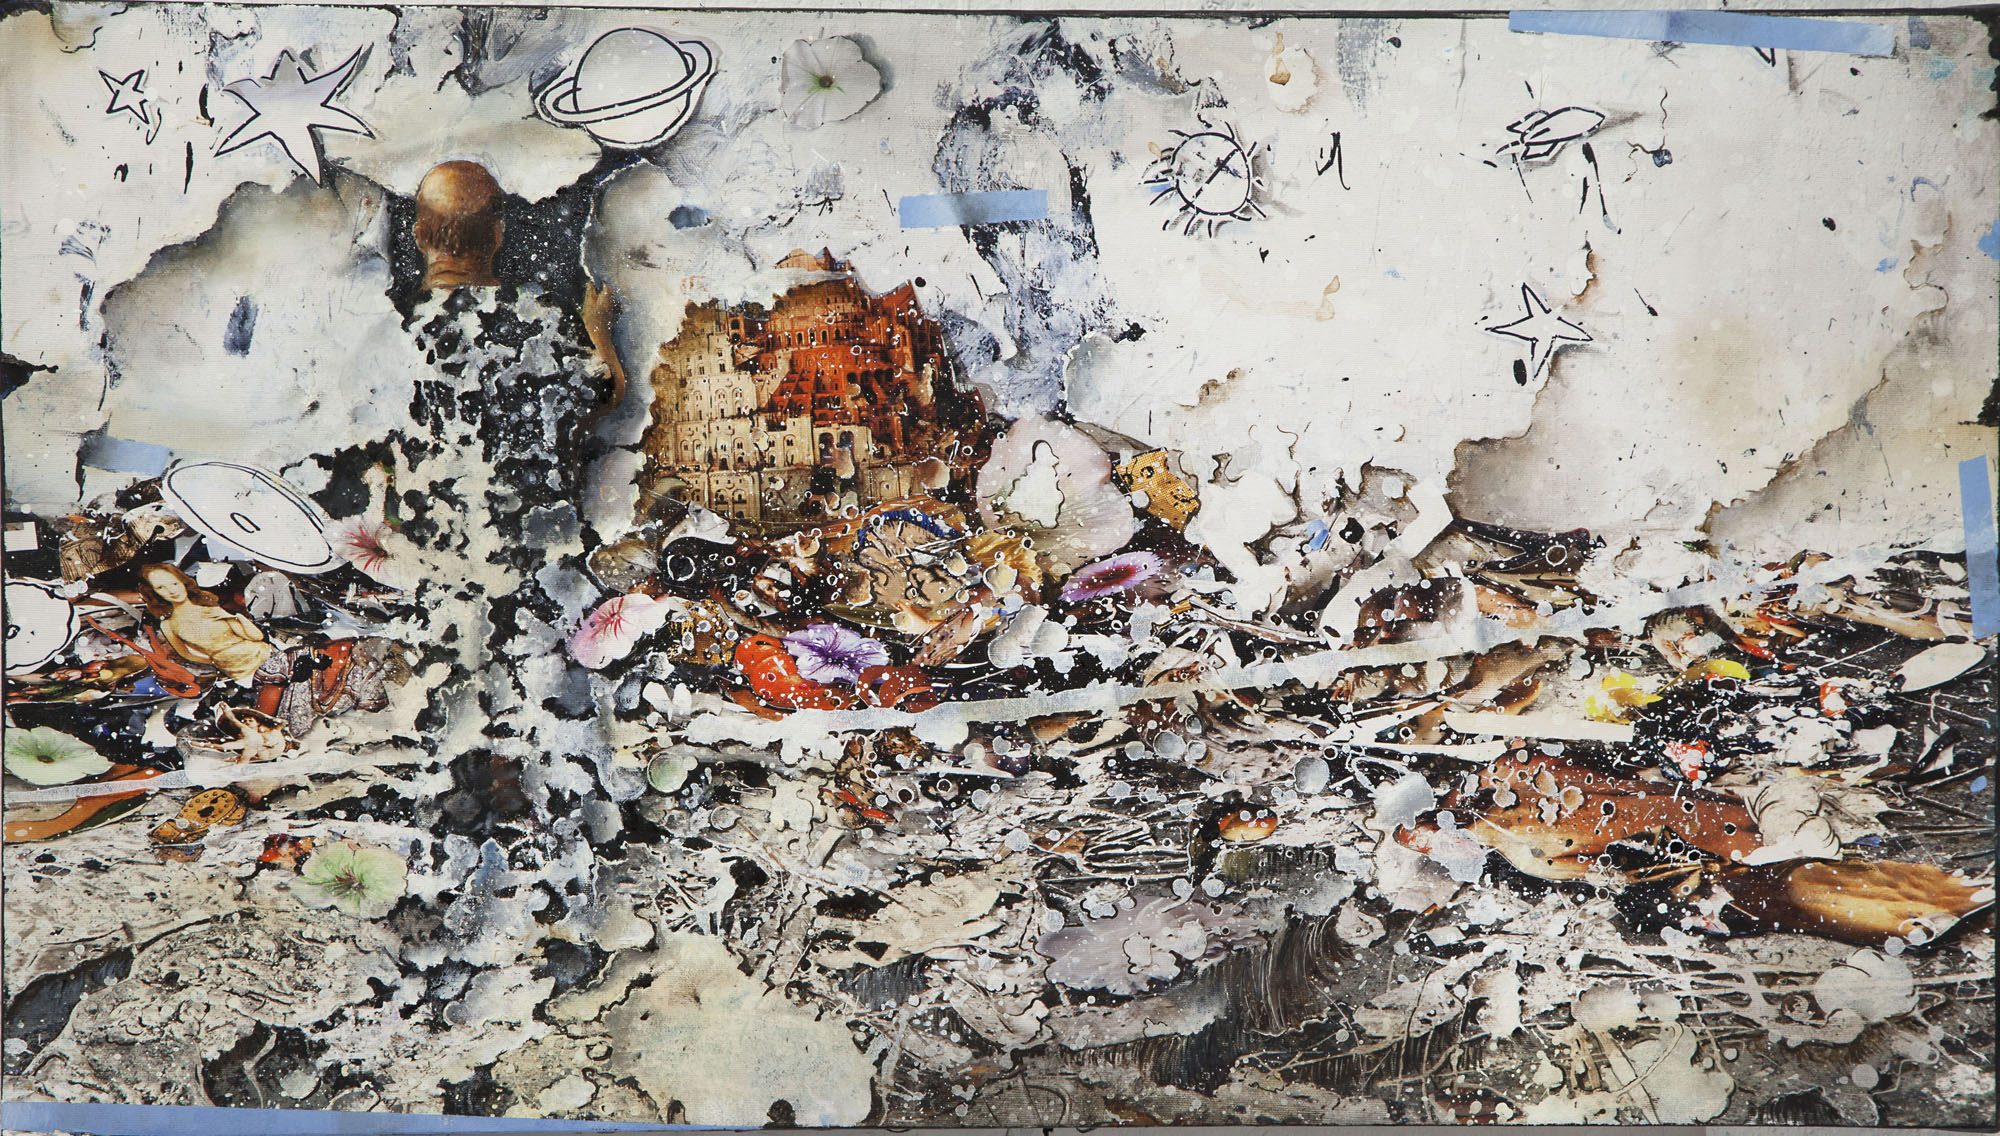 Gerry Bergstein, WINDOW, 2015, mixed media, 19 x 31 inches 19 x 30 inches